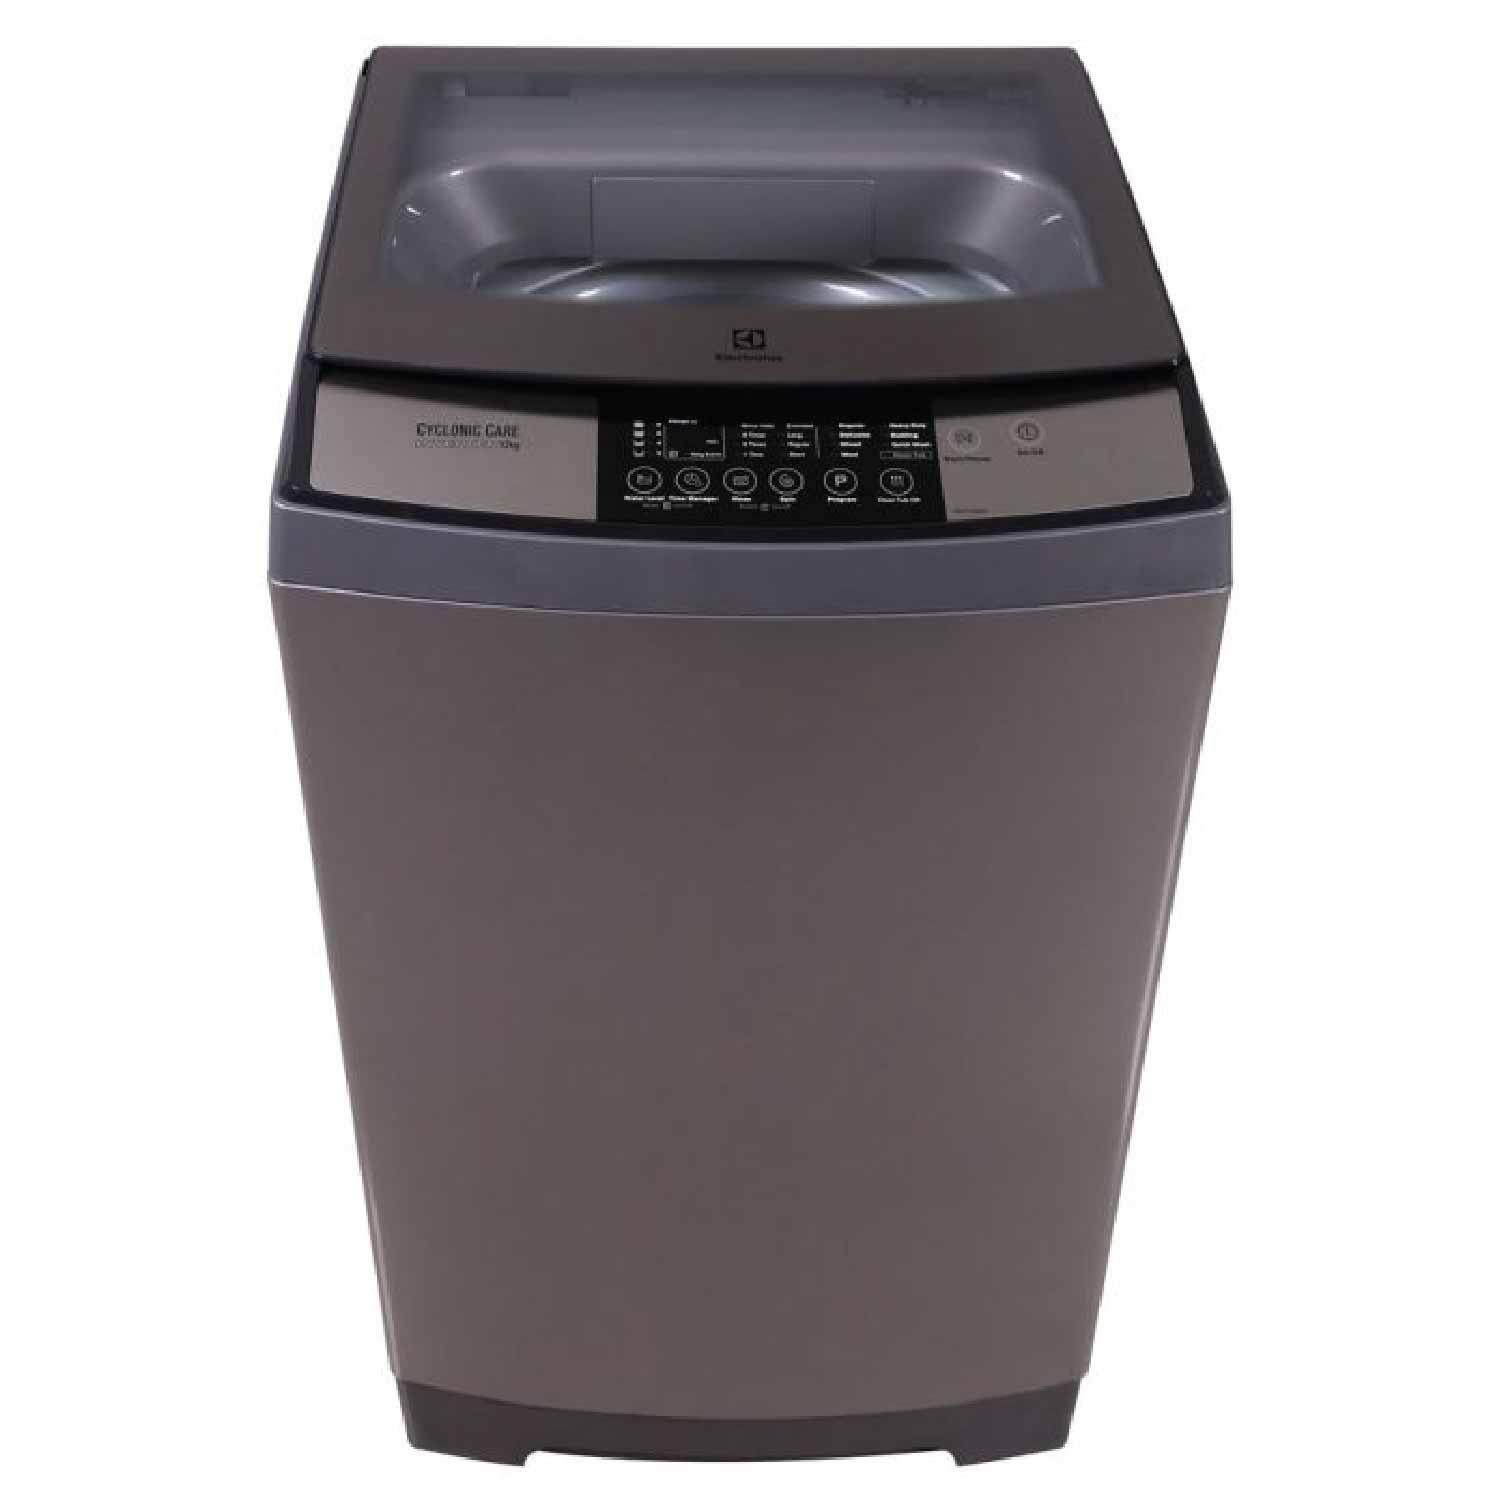 Detail Gambar Electrolux Washing Machine EWT165WD (16.0kg) DDM INVERTER 2018 New Model Terbaru